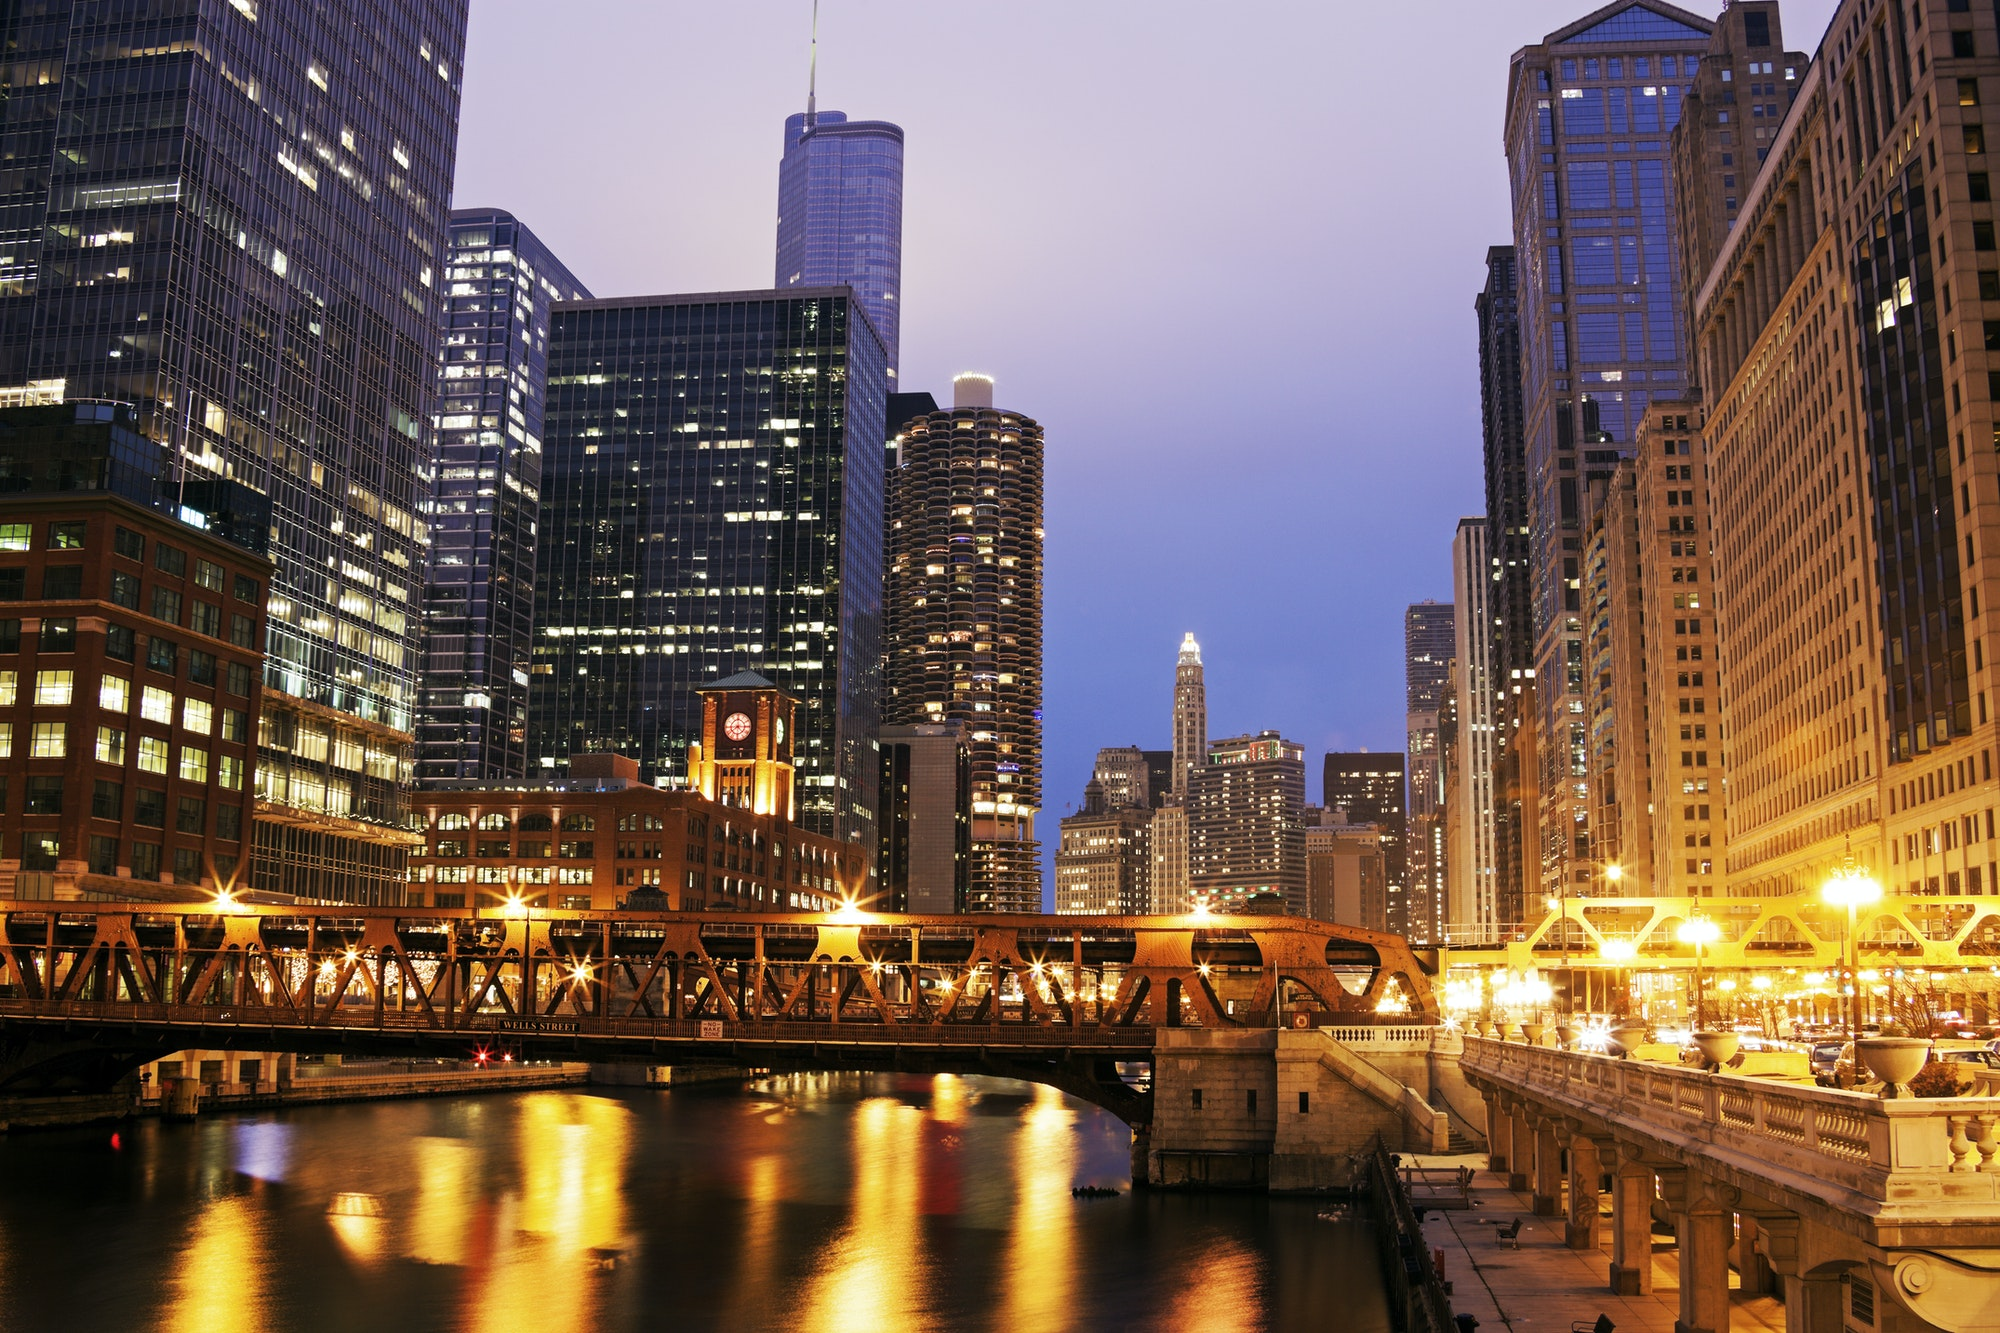 Architecture of Chicago along Chicago River